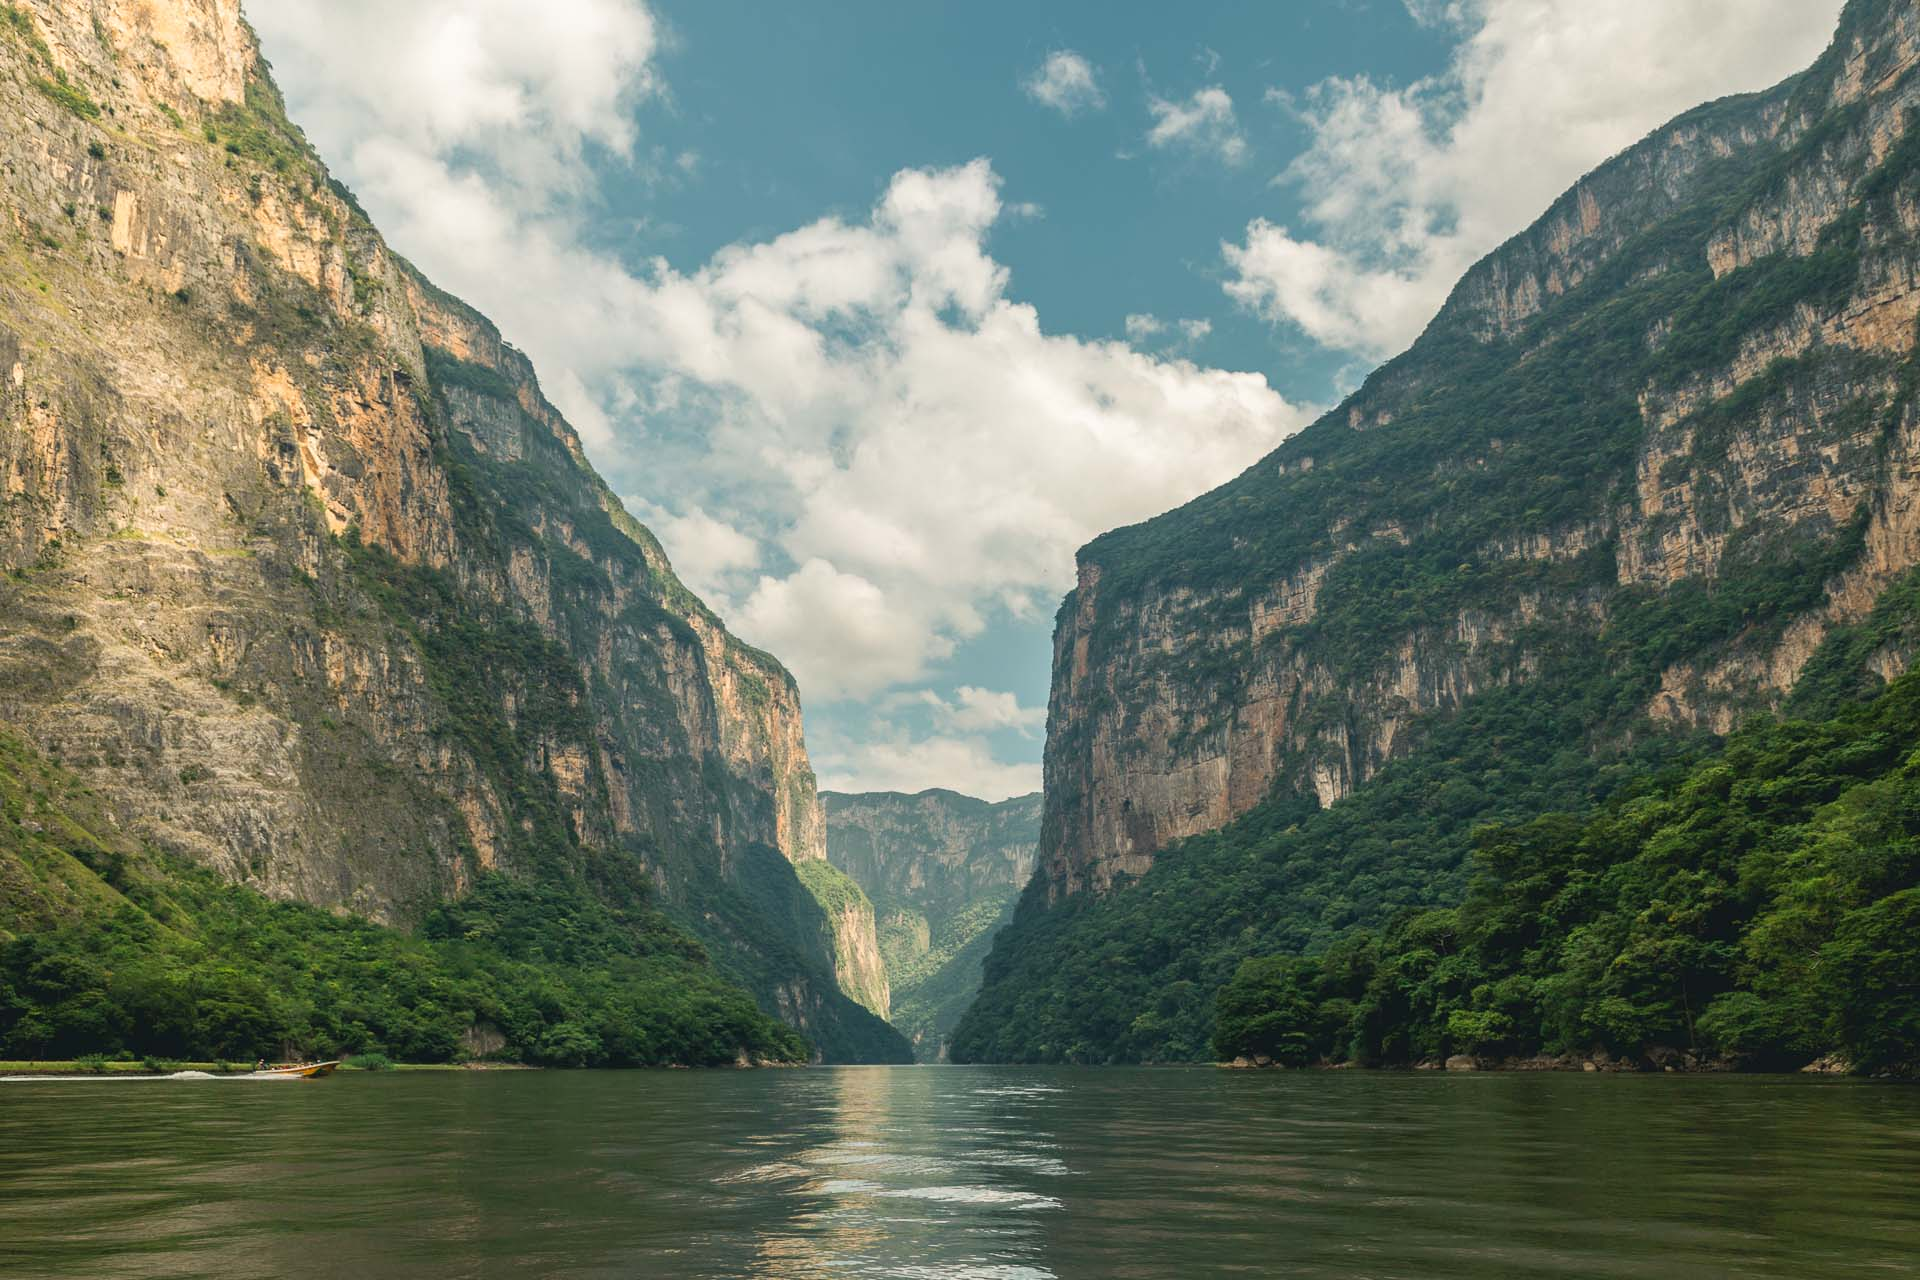 Sumidero Canyon was so breathtaking. We sailed through it and enjoyed every minute.